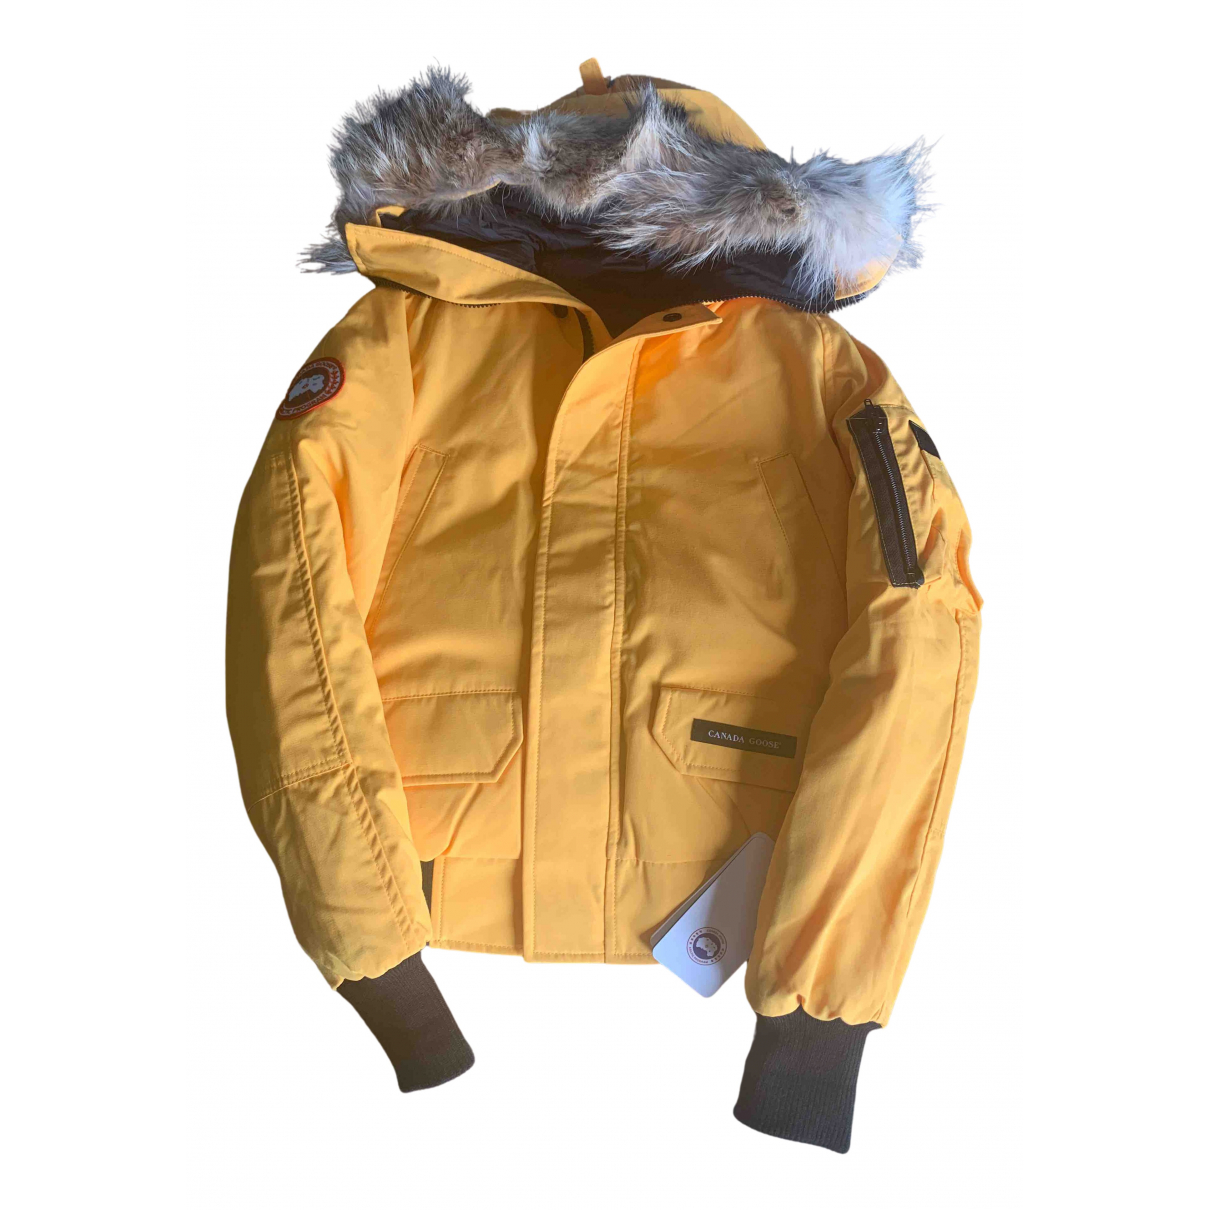 Canada Goose Chilliwack Yellow Cotton jacket & coat for Kids 12 years - XS FR